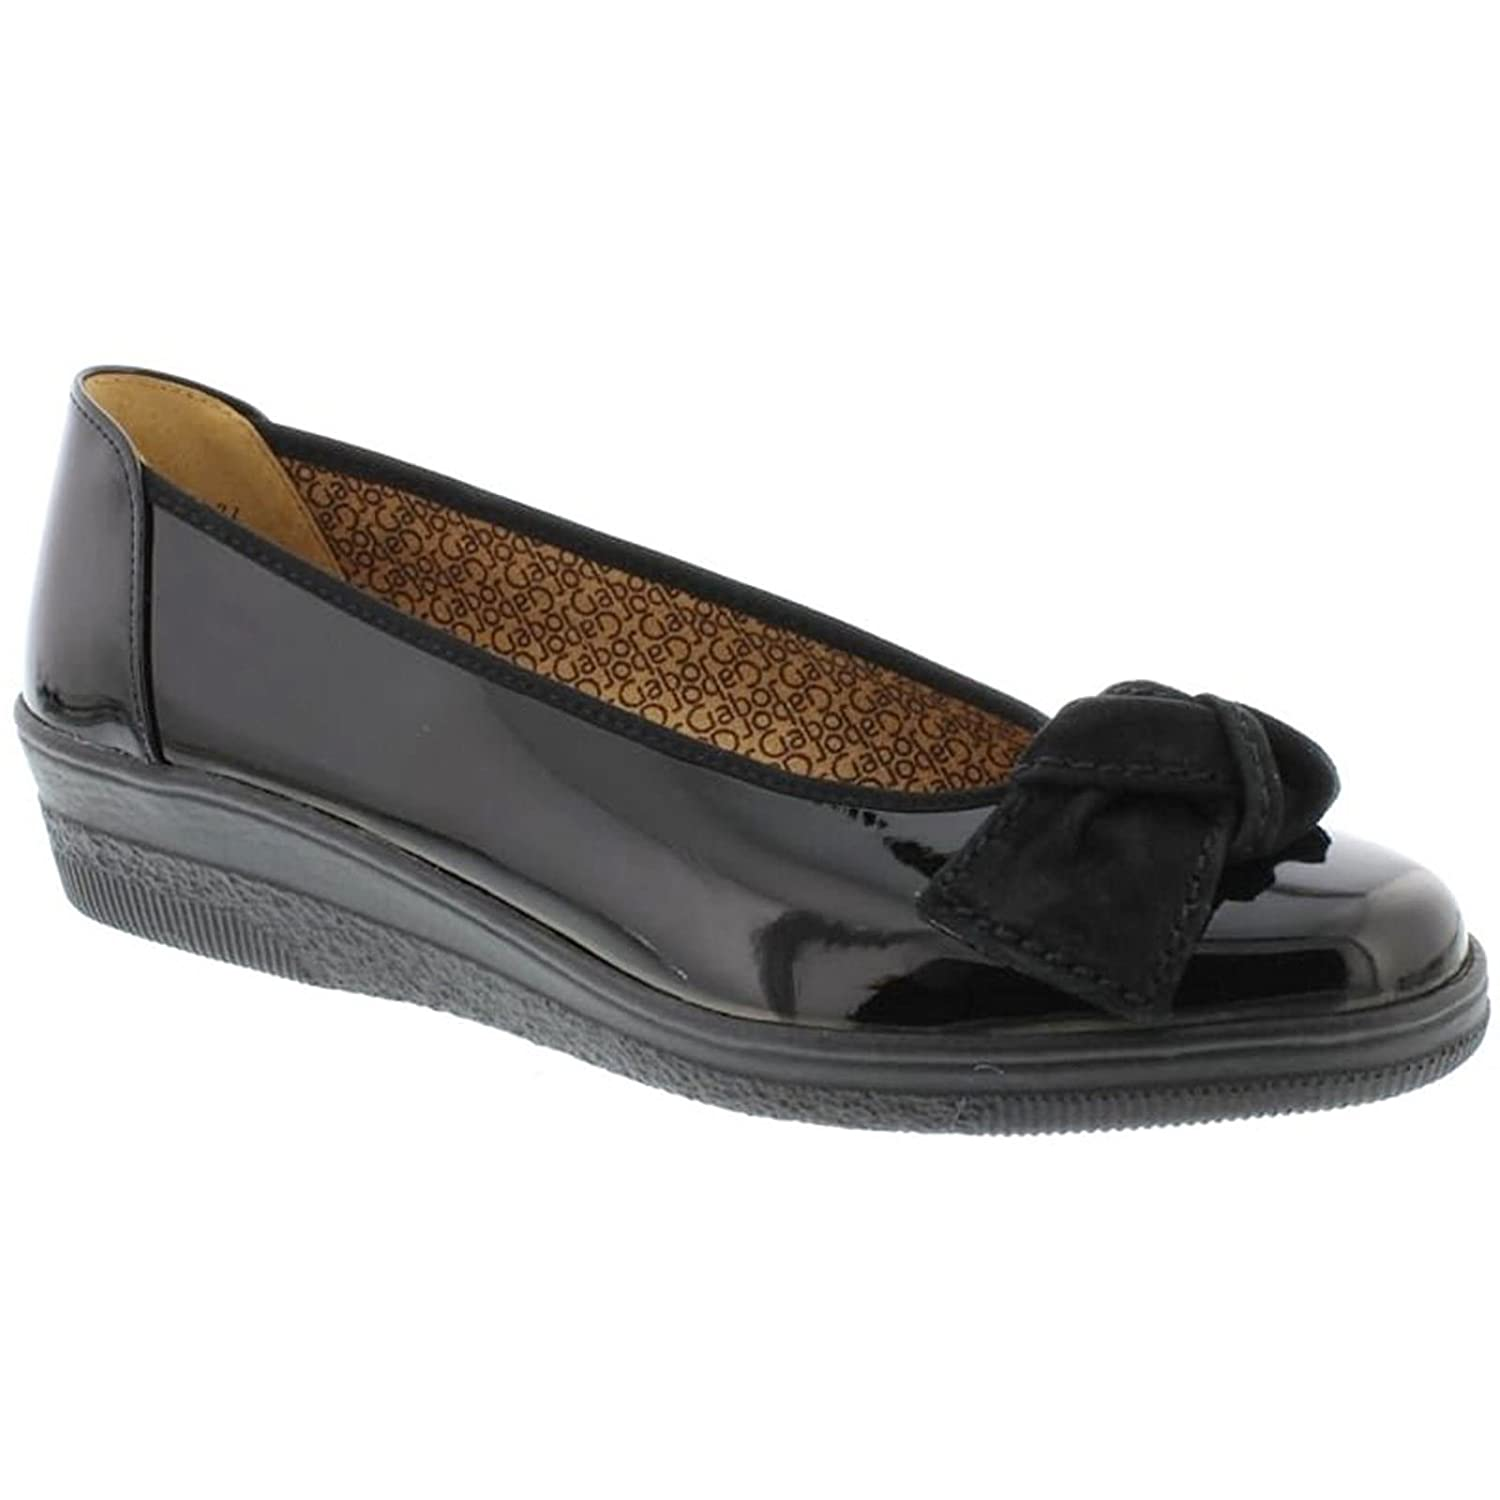 Gabor Womens Lesley 86.403.67 Patent Leather Shoes B078V5YW1D 7.5 B(M) US|Black